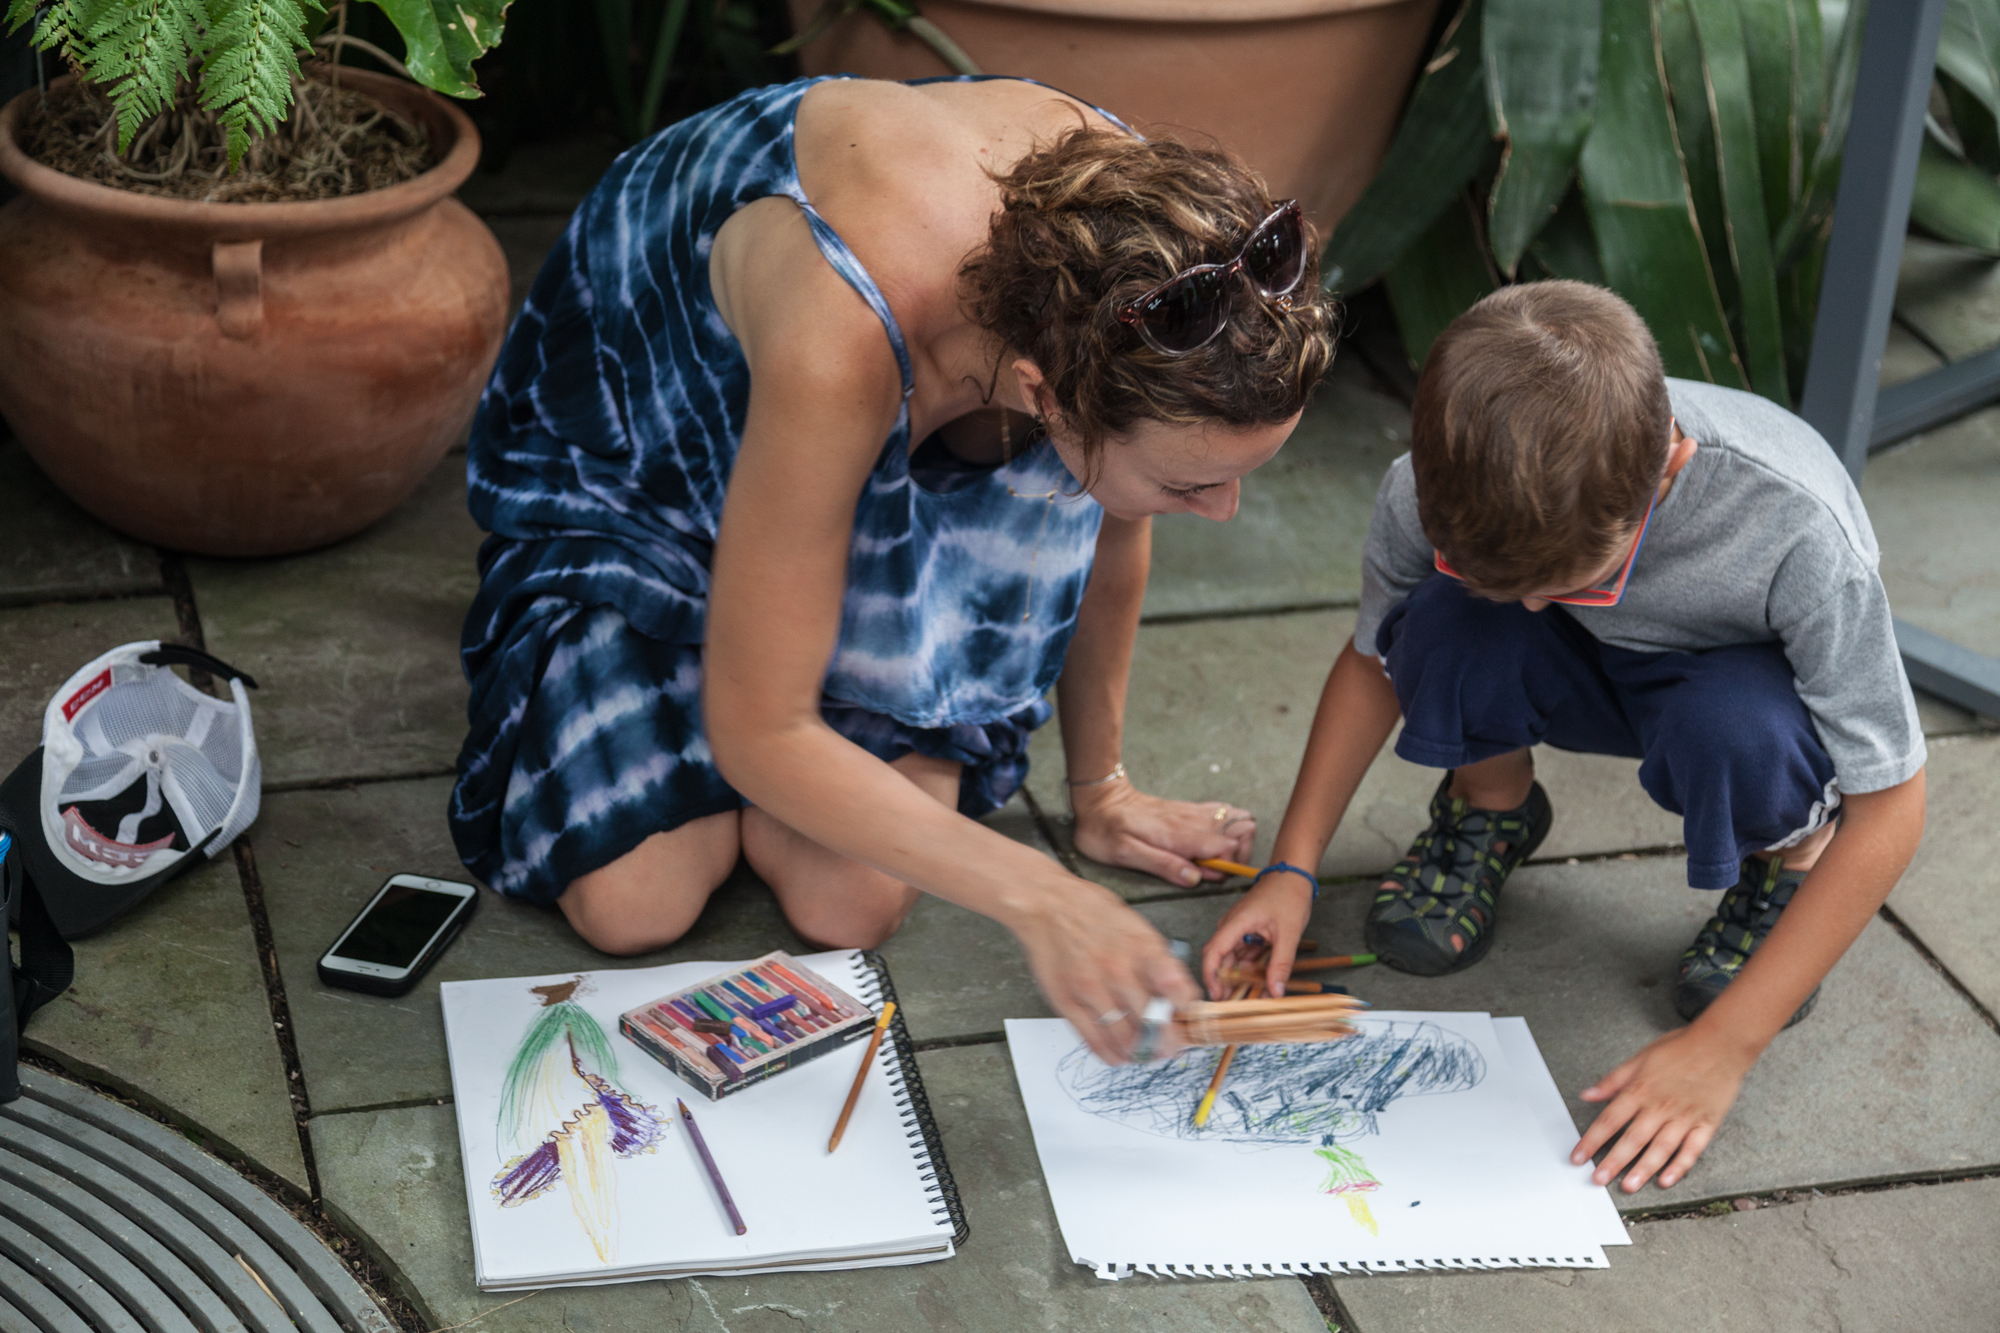 A mother and son do their best artistic inspiration of the corpse flower ( Amorphophallus titanum ) in bloom, memorializing the moment in colored pencils and pastels.